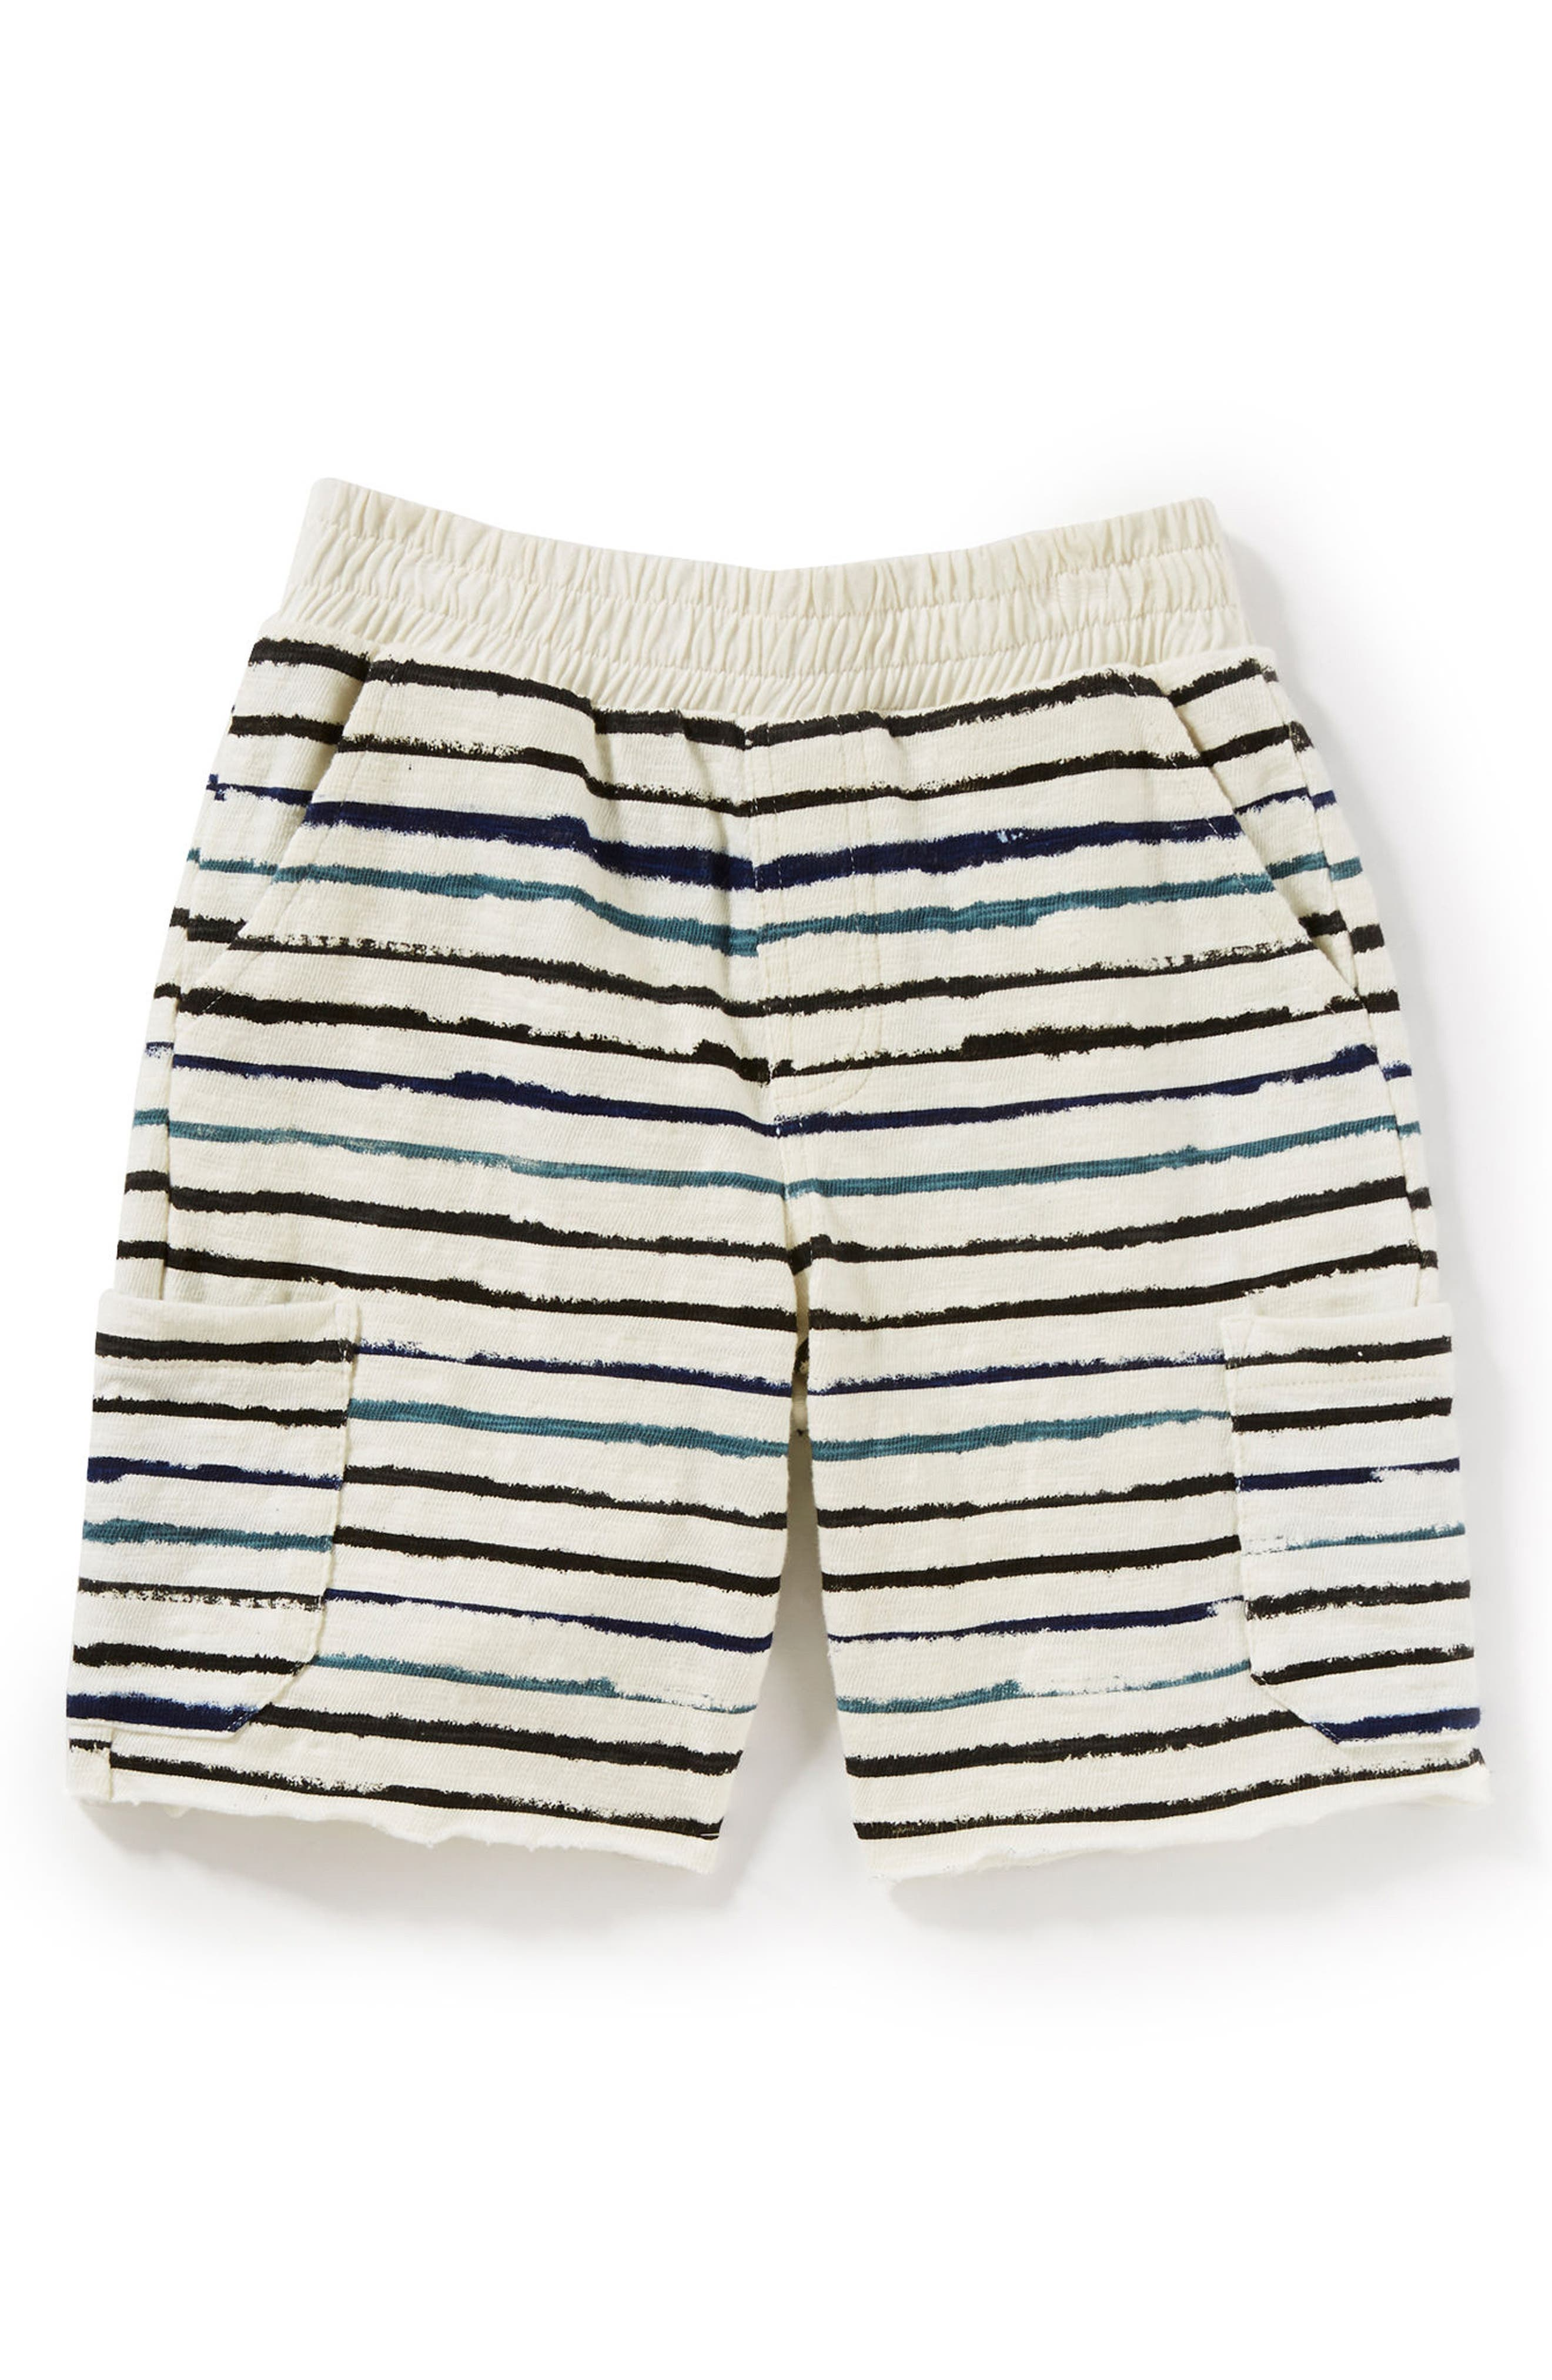 Alternate Image 1 Selected - Peek Asher Stripe Shorts (Toddler Boys, Little Boys & Big Boys)